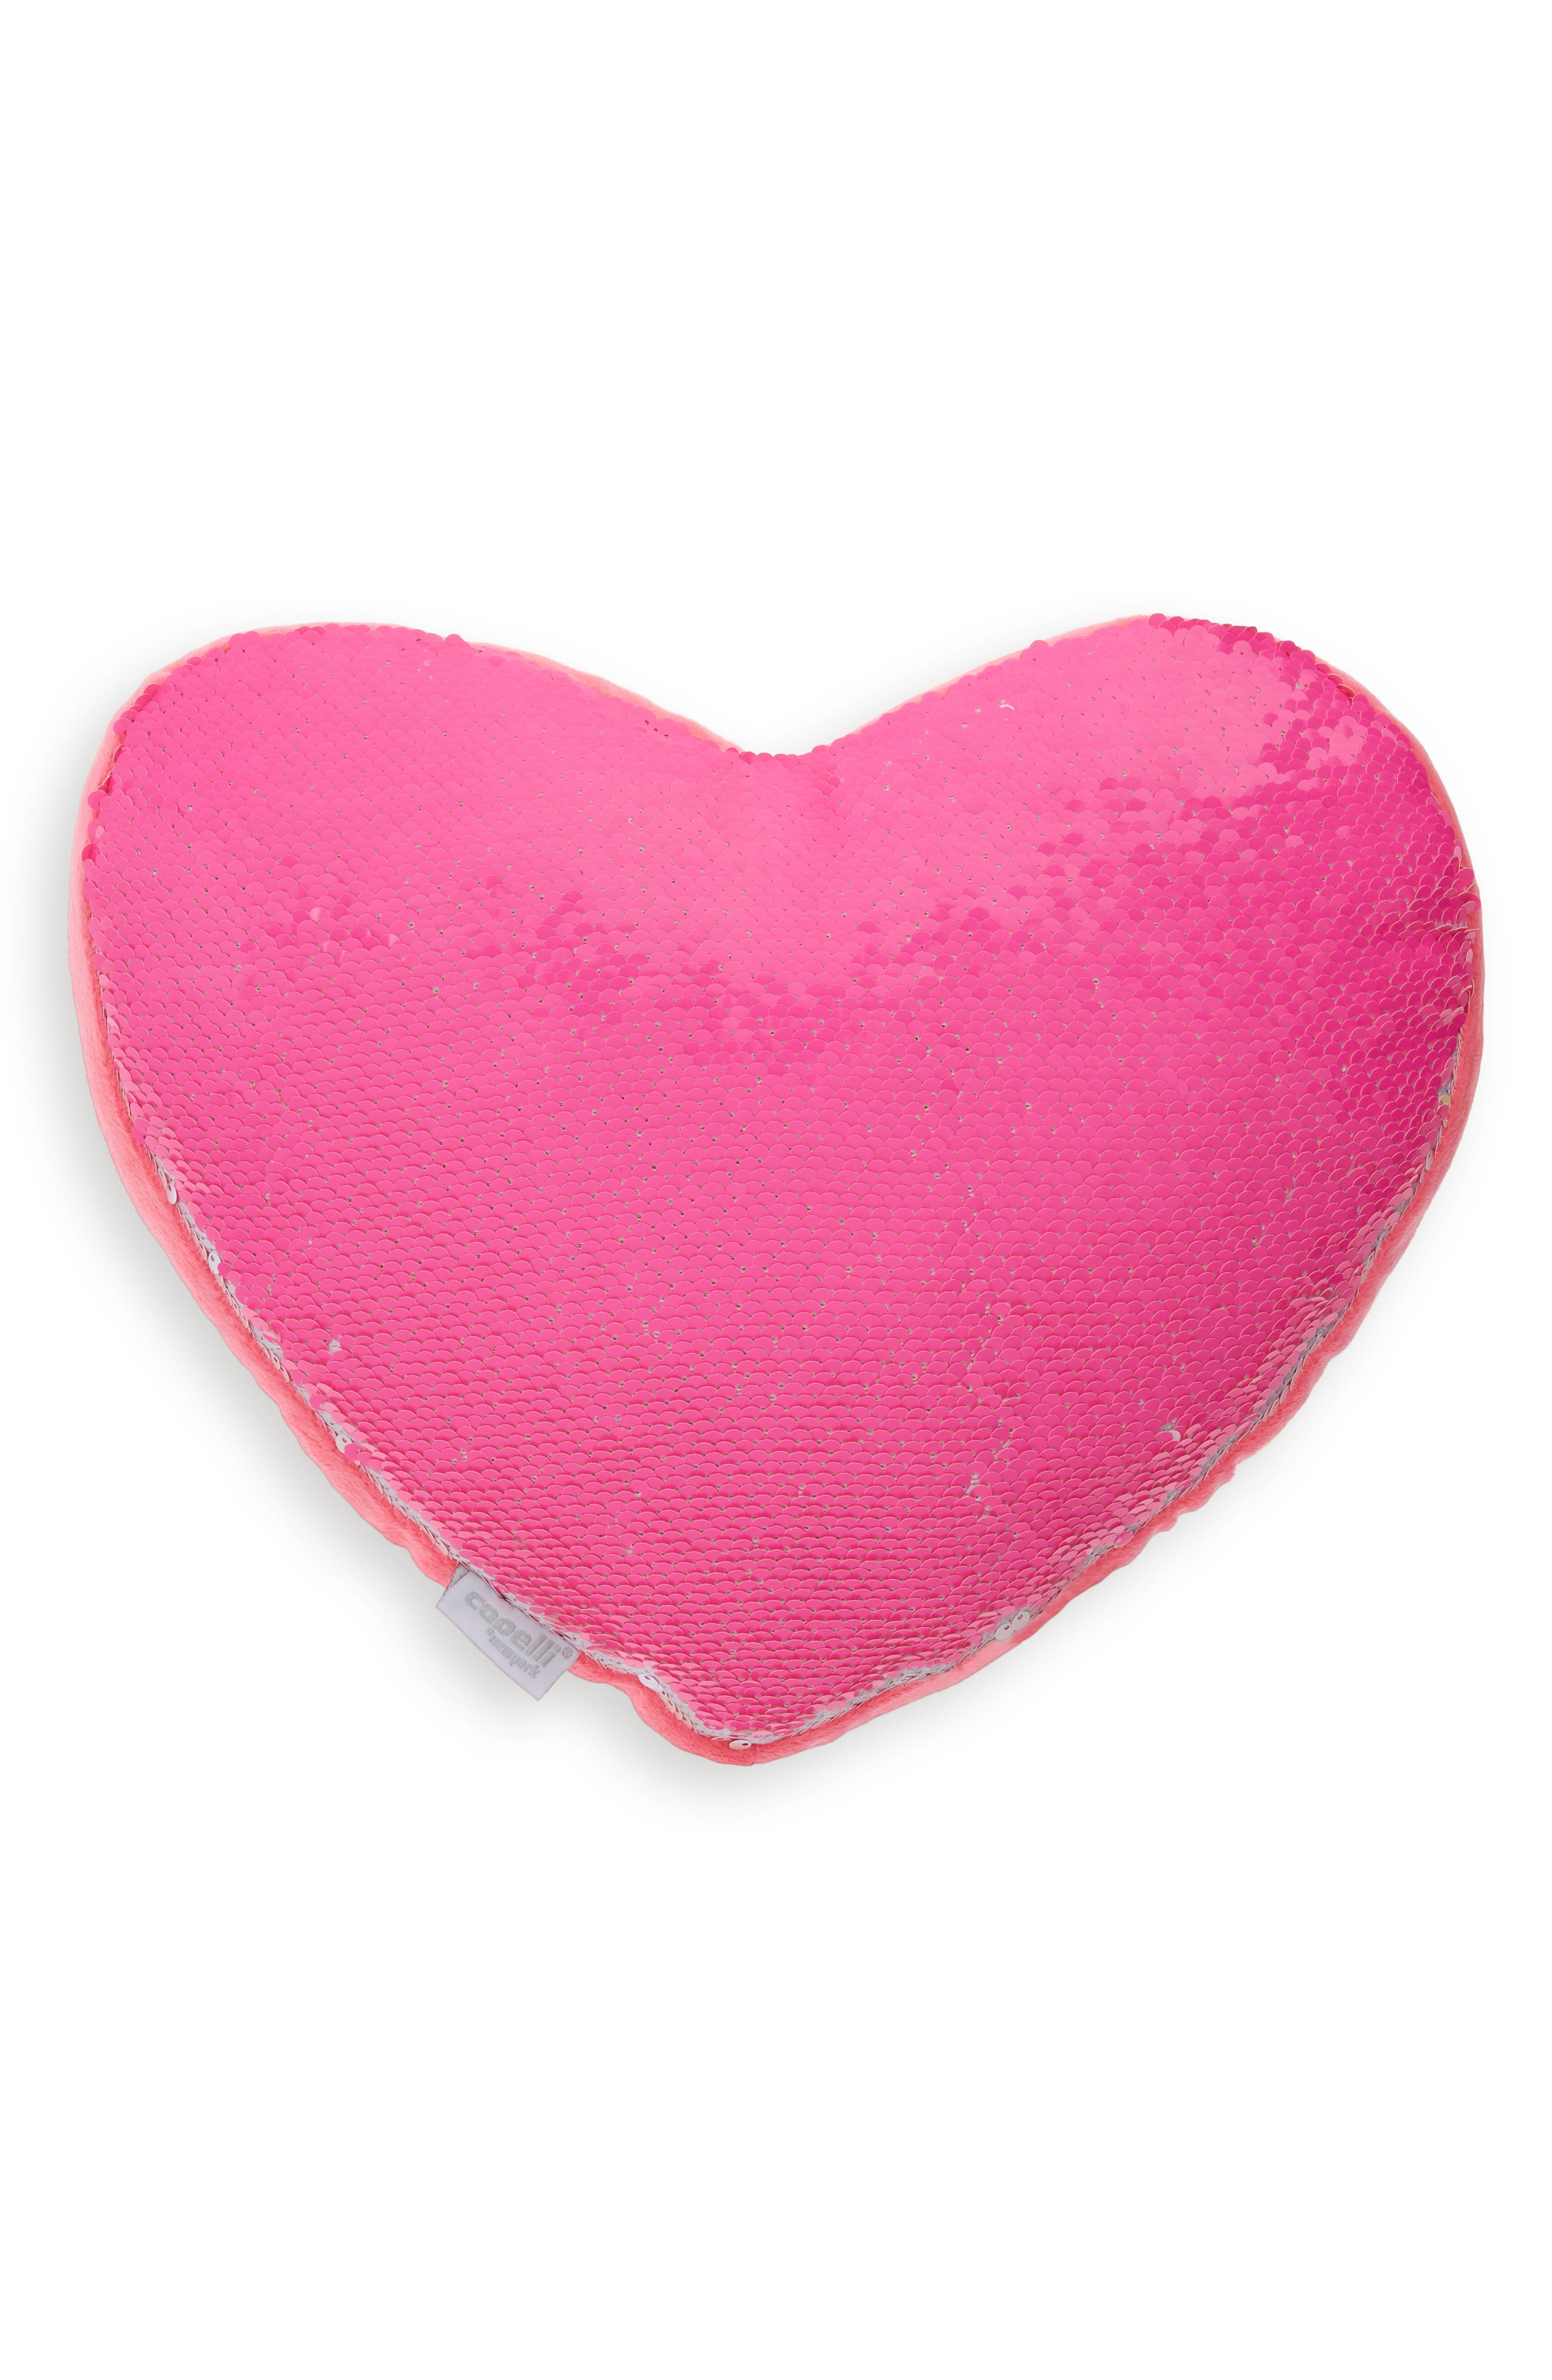 CAPELLI NEW YORK Reversible Sequin Heart Pillow, Main, color, PINK COMBO